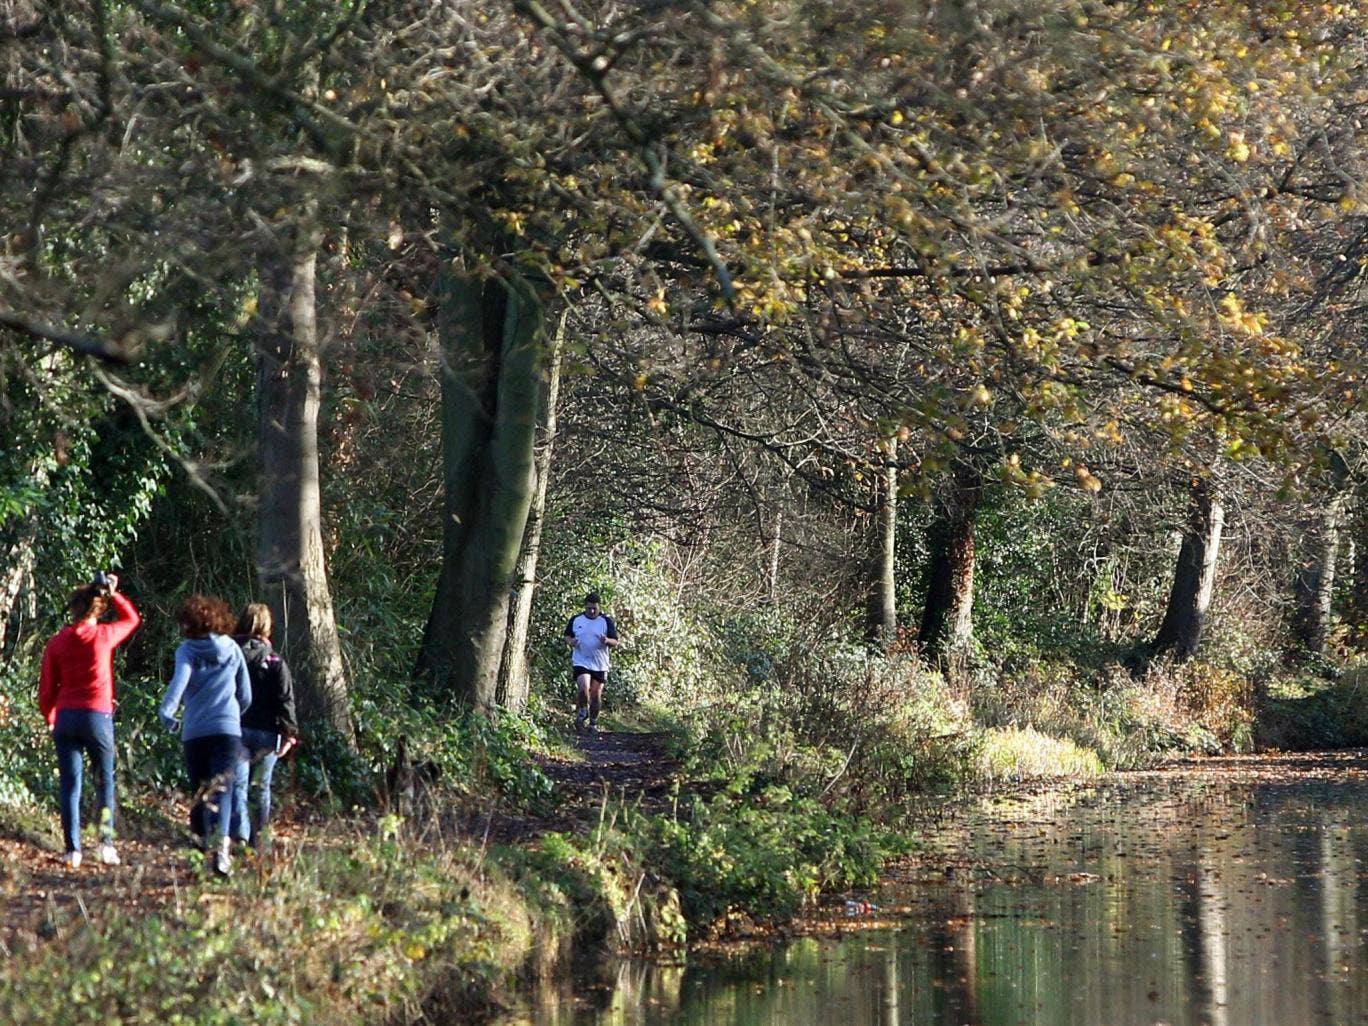 """The Hart district of Hampshire has been named the most desirable place to live in the UK. With 84 square miles of green wooded landscape and Hampshire's largest freshwater lake, the area has been dubbed """"a step back in time"""""""